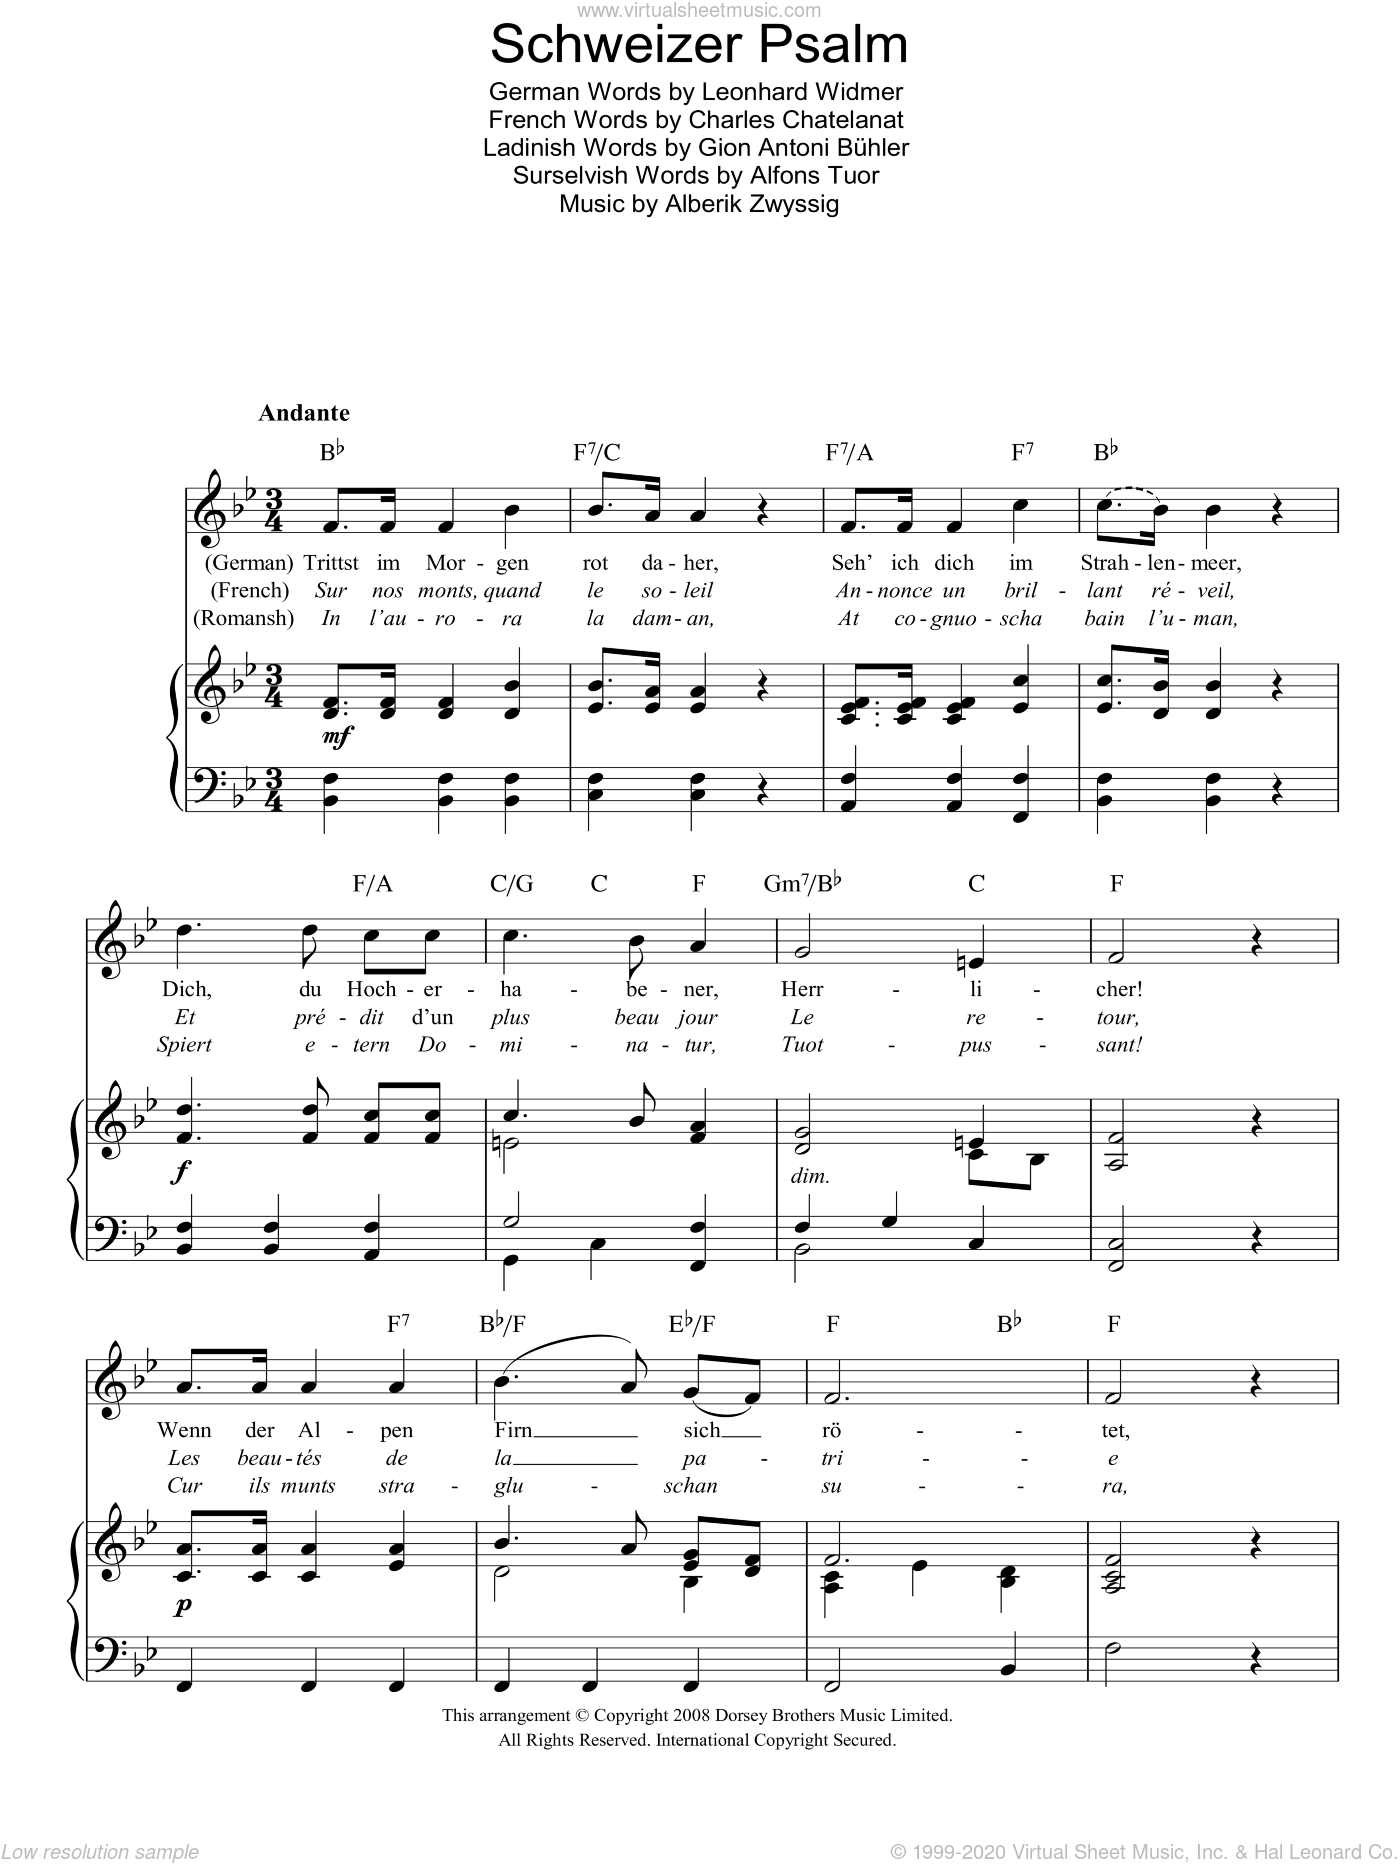 Schweizer Psalm (Swiss National Anthem) sheet music for voice, piano or guitar by Alberik Zwyssig, Alfons Tuor, Charles Chatelanat, Gion Antoni Buhler and Leonhard Widmer, intermediate skill level